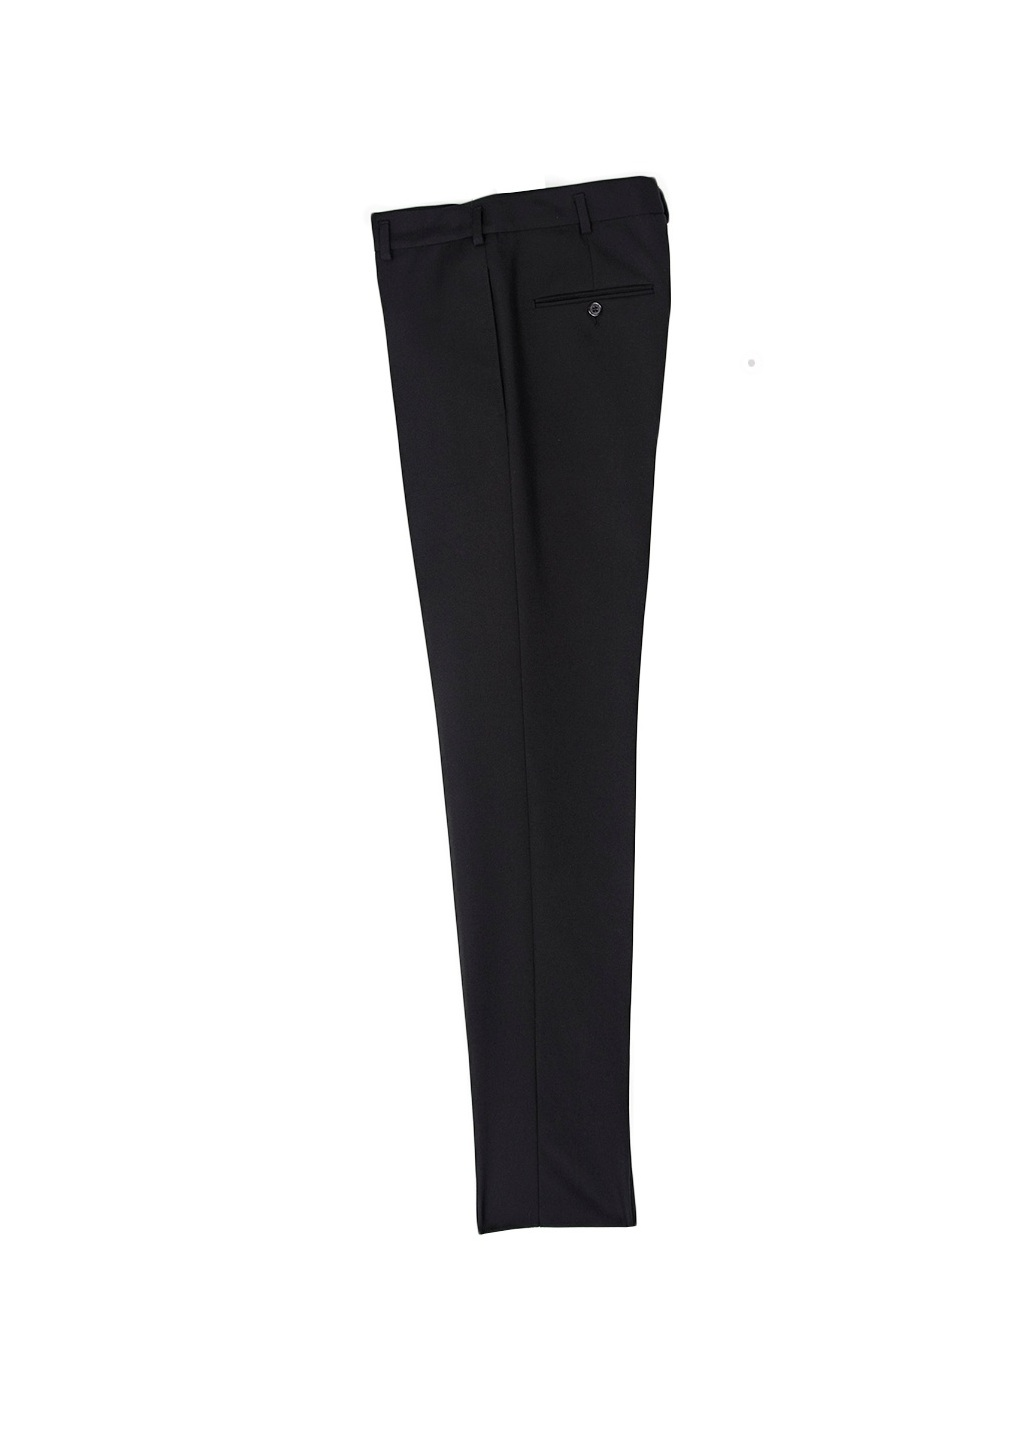 "32 SAINT LAURENT TROUSER ""SAINT-TR01"""